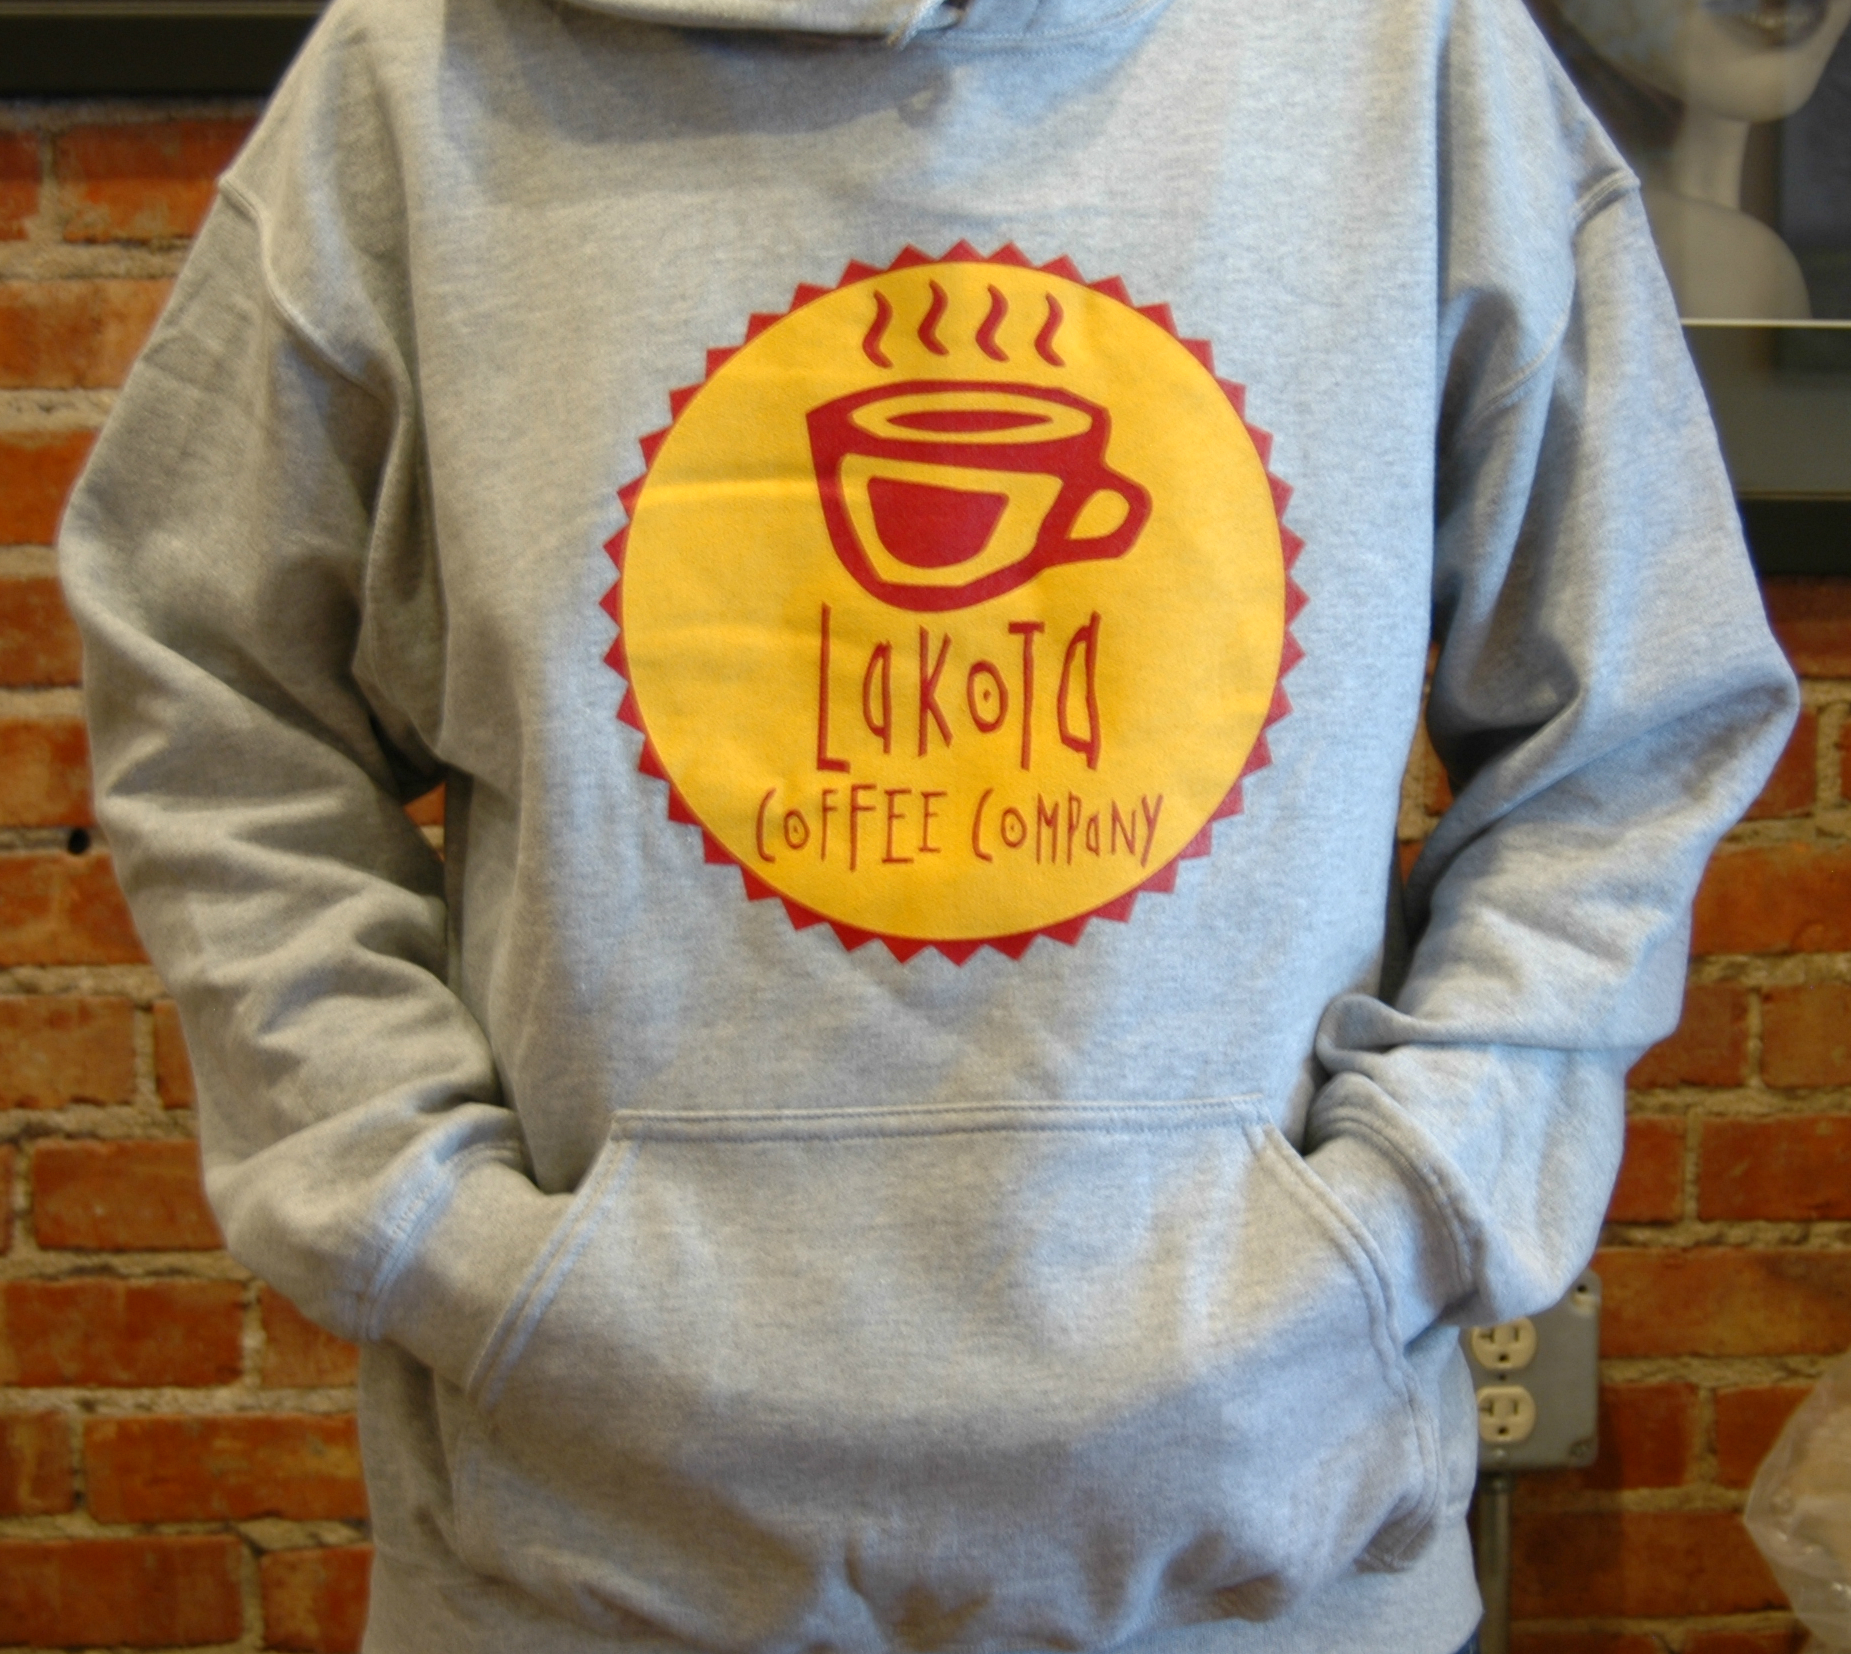 Person wearing a grey hoodie with the Lakota Coffee Company logo on the front in yellow and red